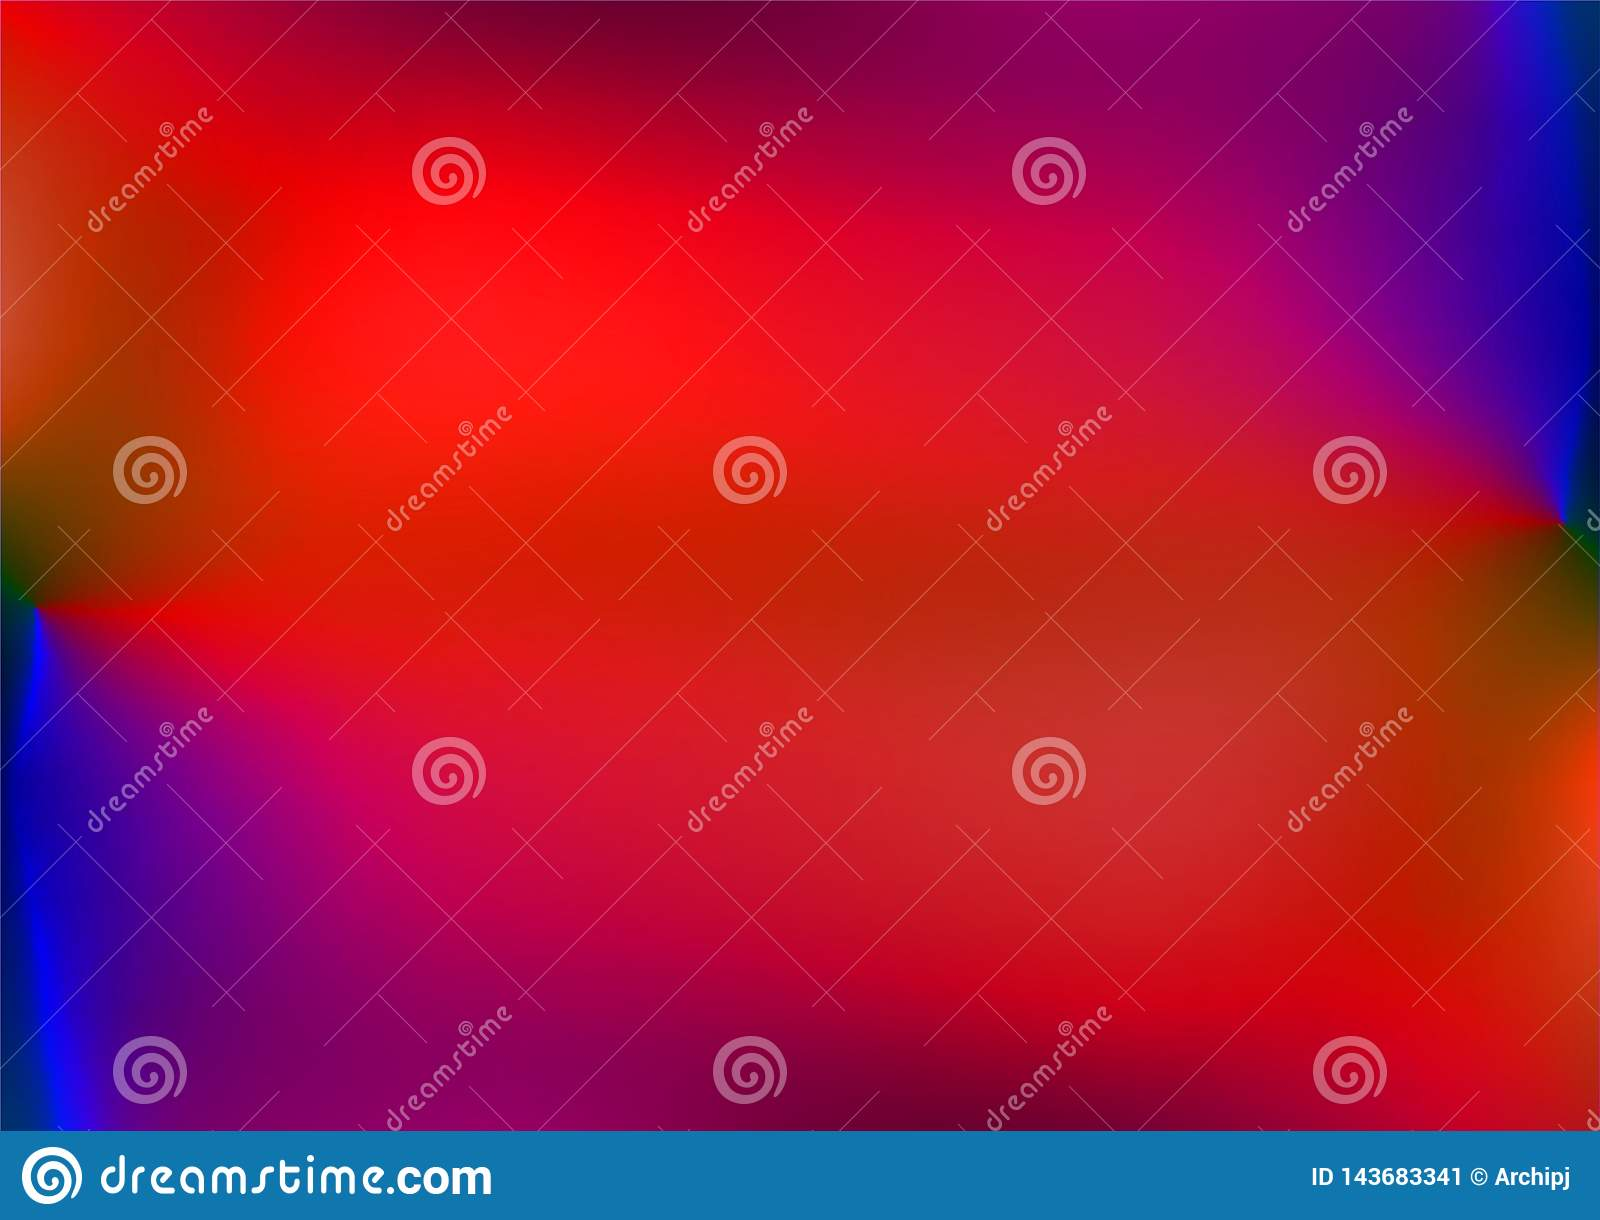 Abstract Red And Blue Blur Color Gradient Background For